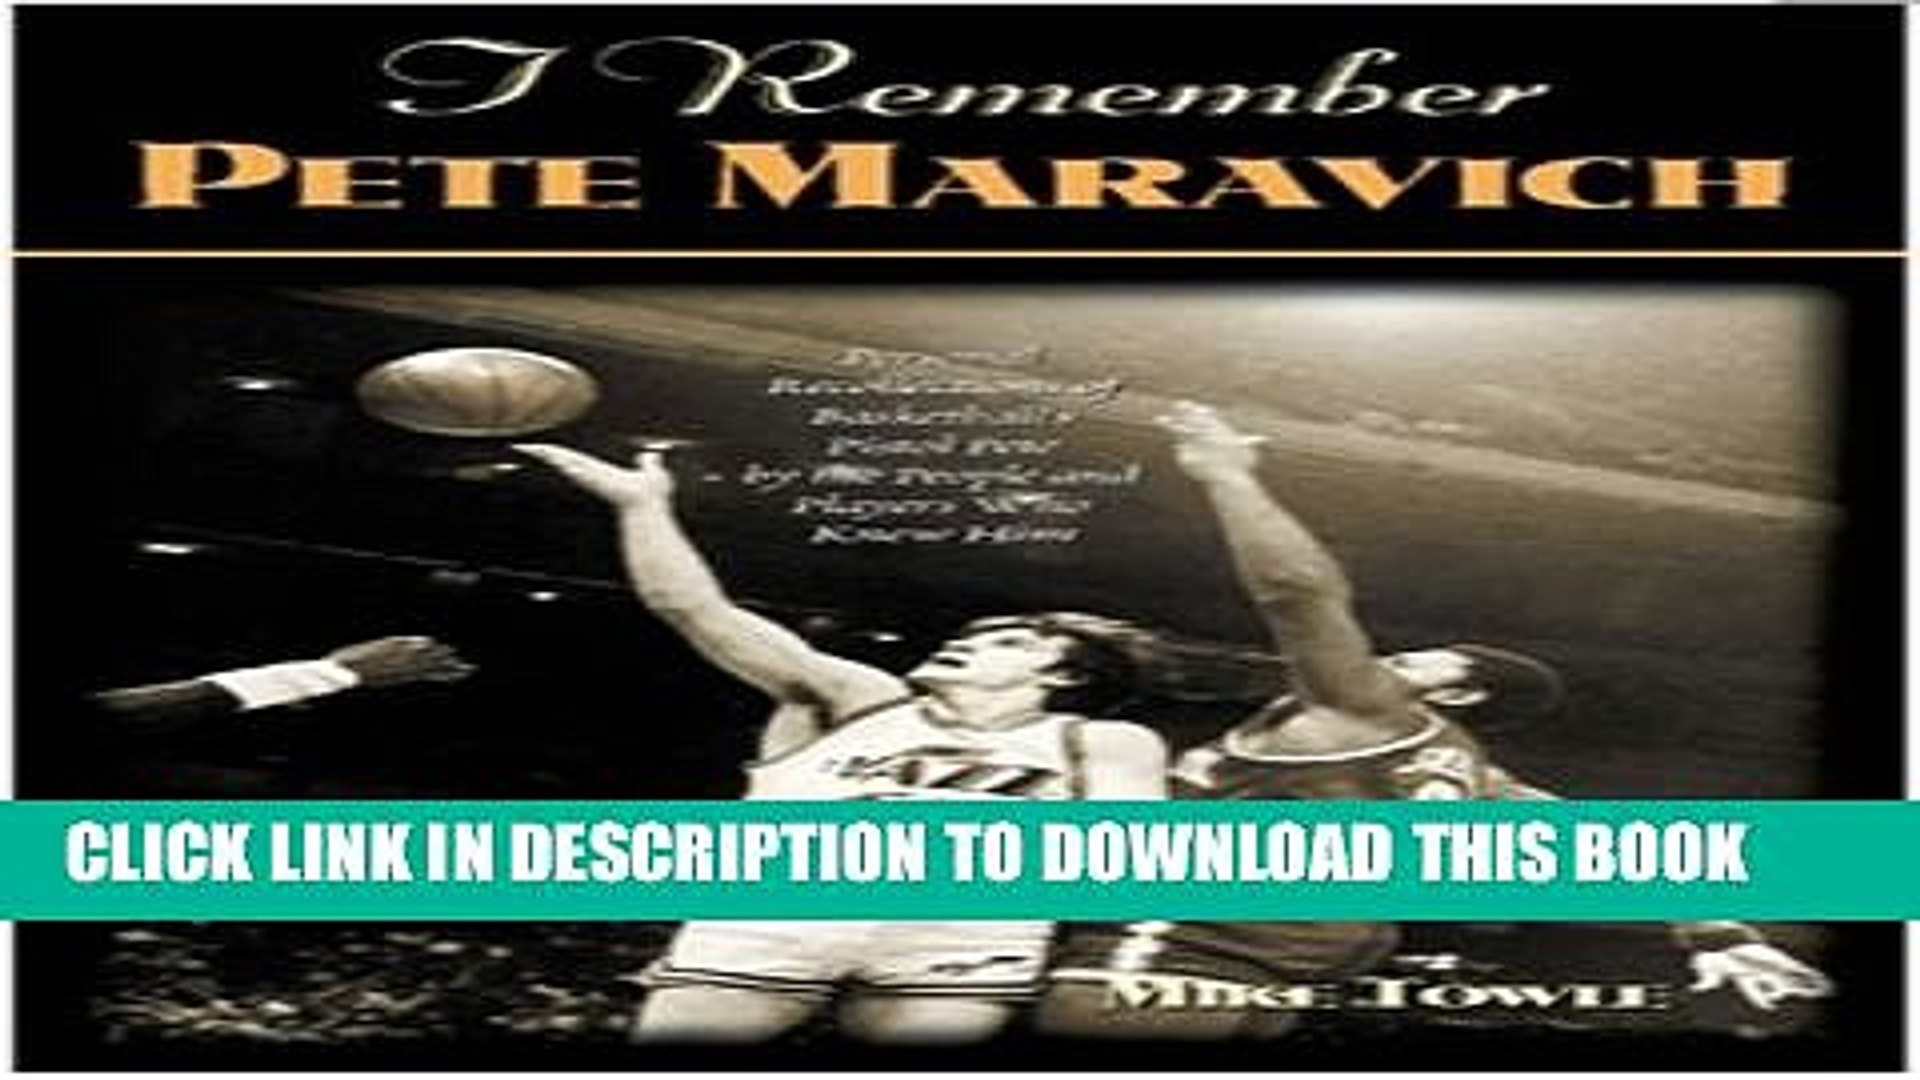 [PDF] I Remember Pete Maravich: Personal Recollections of Basketballs Pistol Pete Full Online